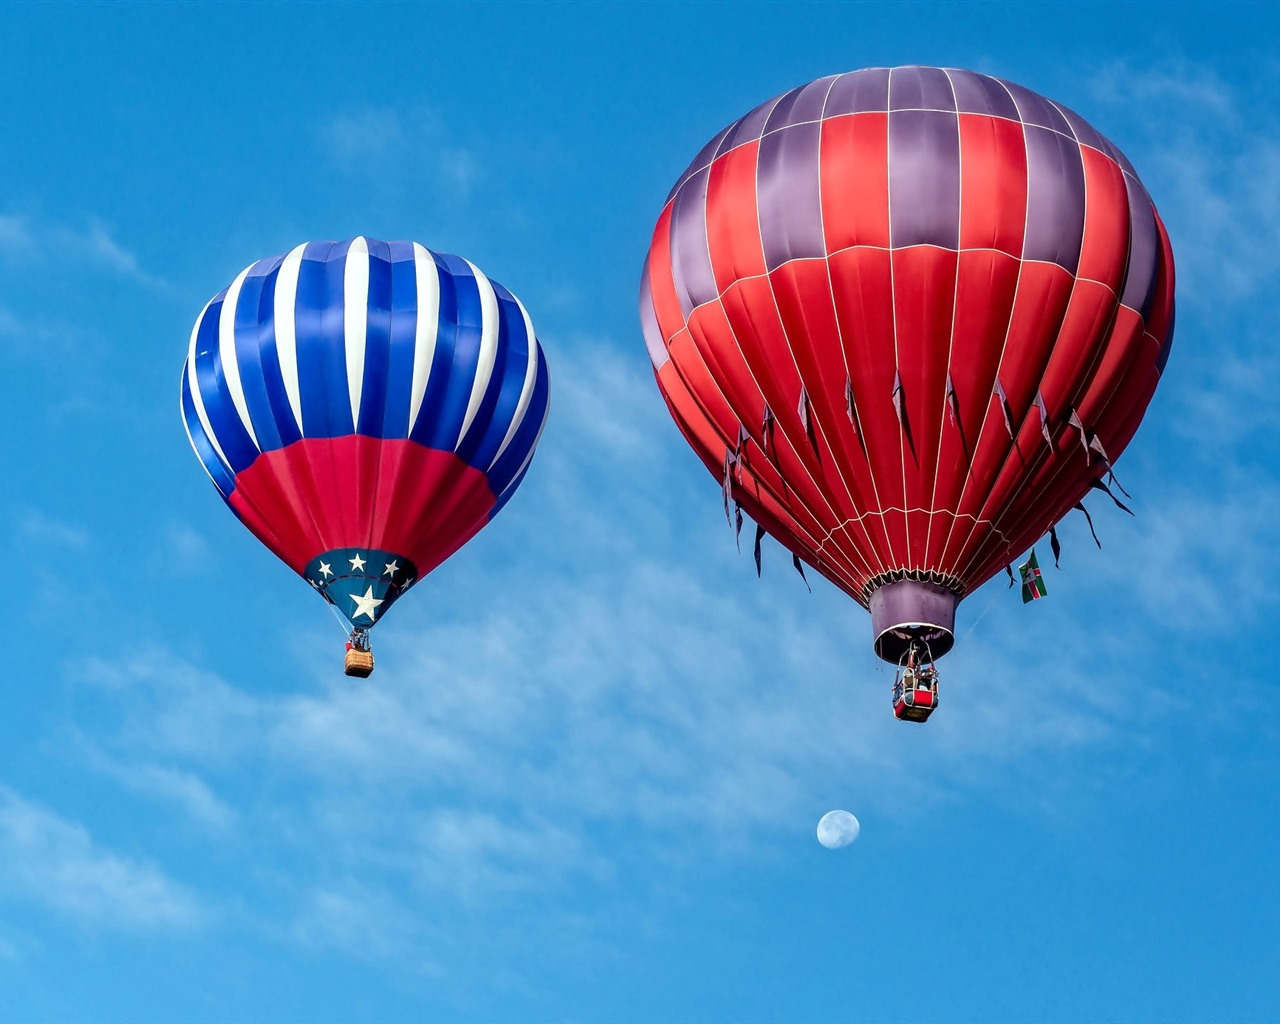 Wallpaper Two Hot Air Balloon Blue Sky Clouds 1920x1200 Hd Picture Image